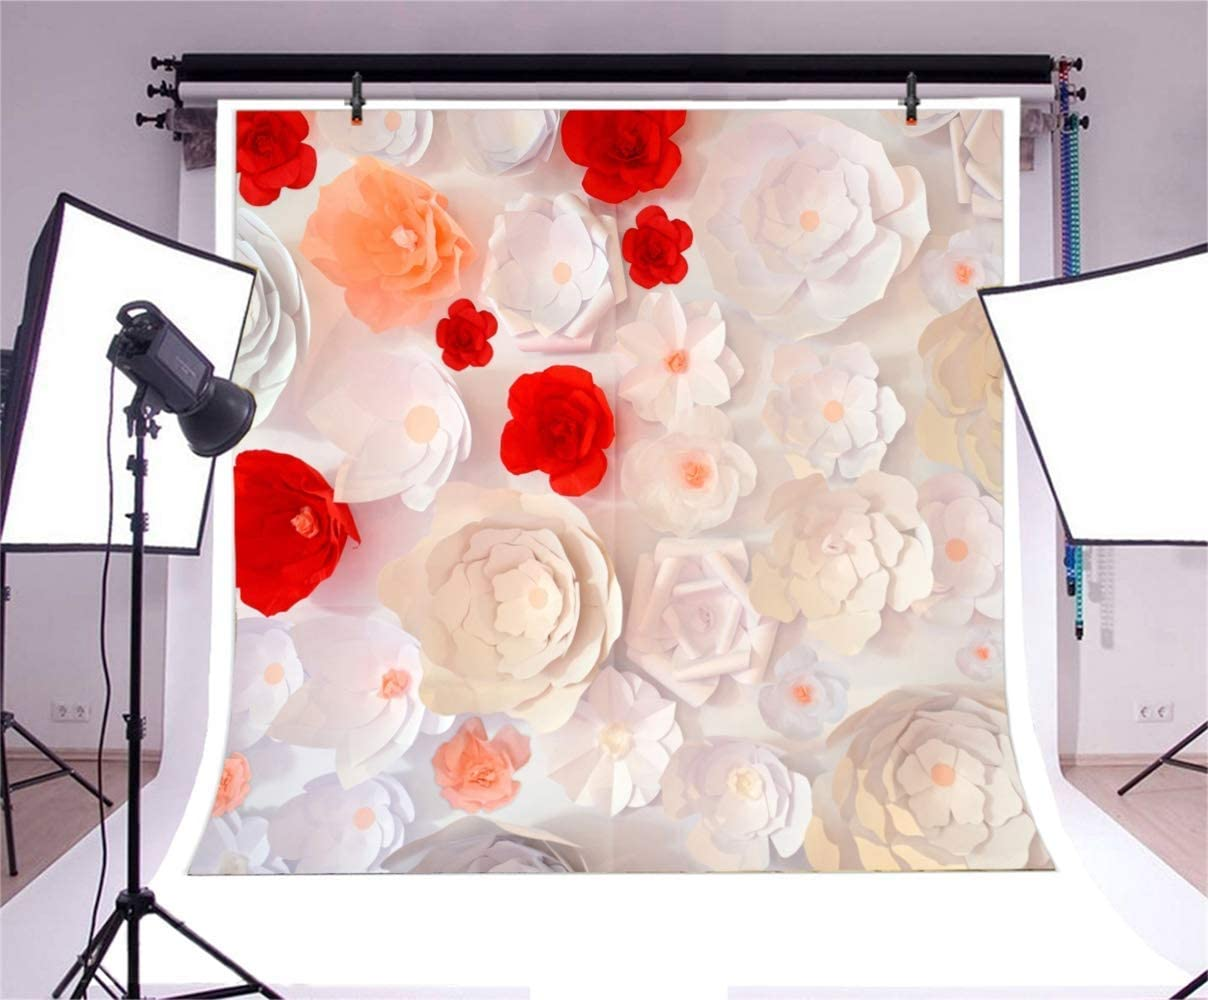 Polyester 6.5x6.5ft Paper Flower Photography Background White Red Orange Flowers for Bride Wedding Stage Props Birthday Party Decor Child Kids Baby Adult Portrait Shoot Wallpaper